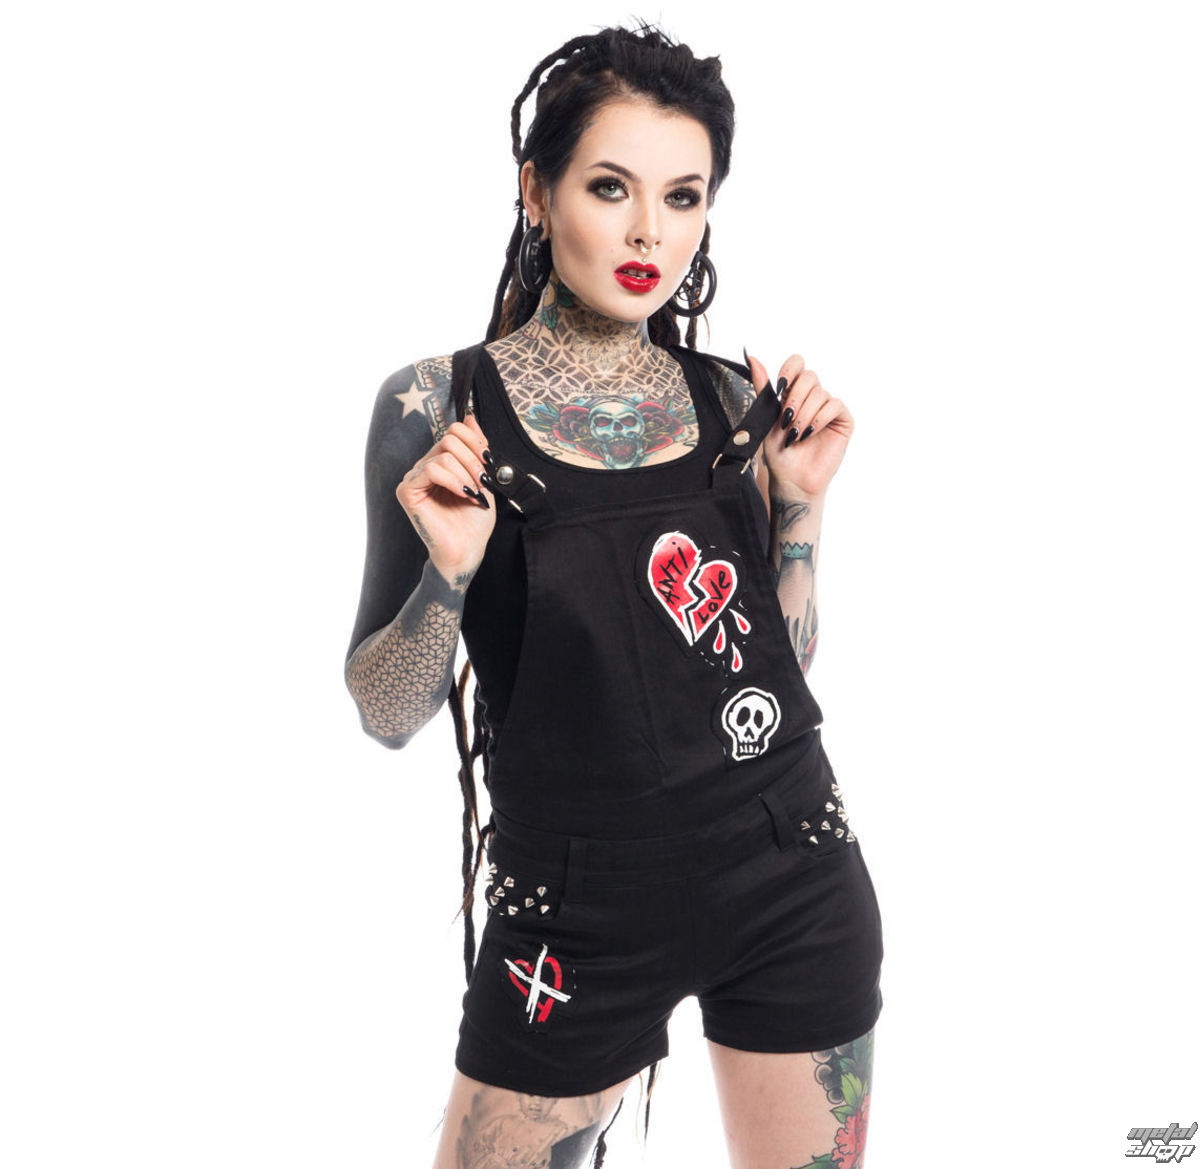 kraťasy nebo šortky HEARTLESS ANTI LOVE BIB AND BRACE M